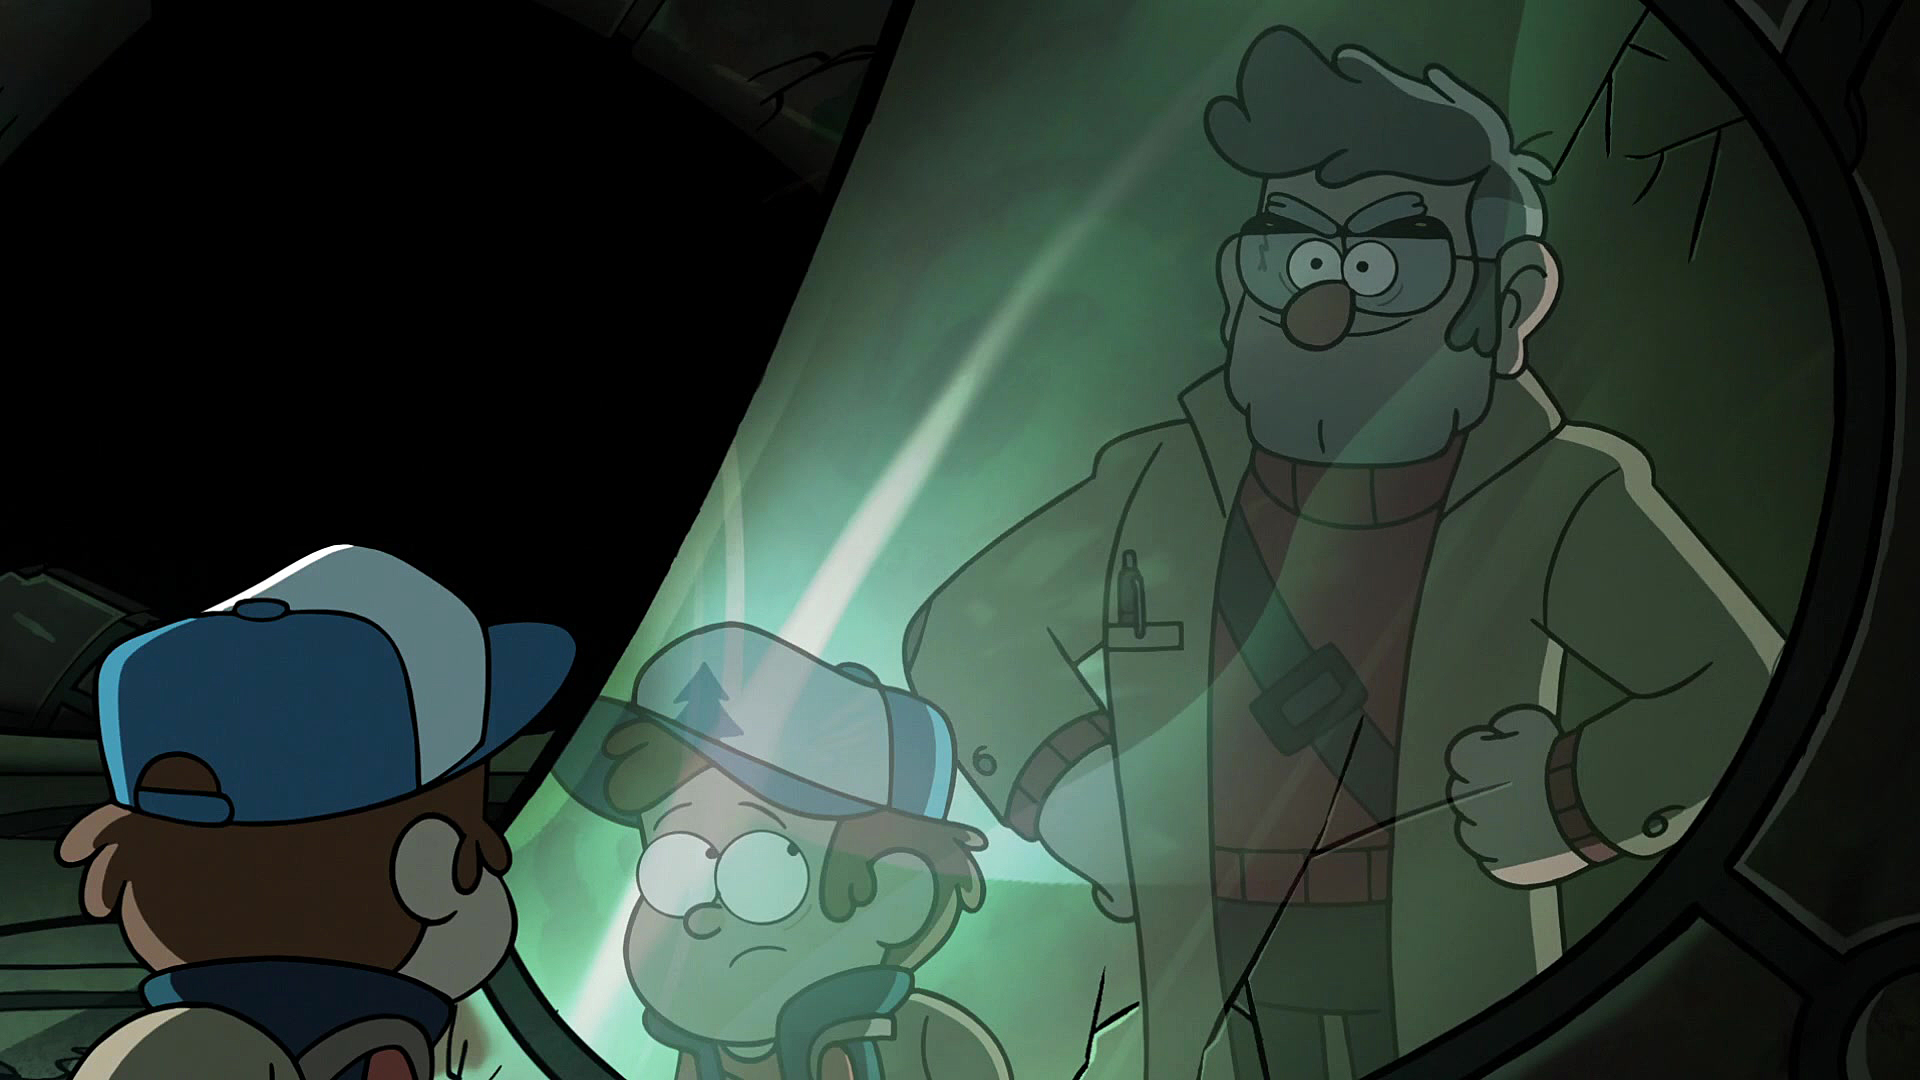 gravity falls season 2 episode 3 cartoon crazy